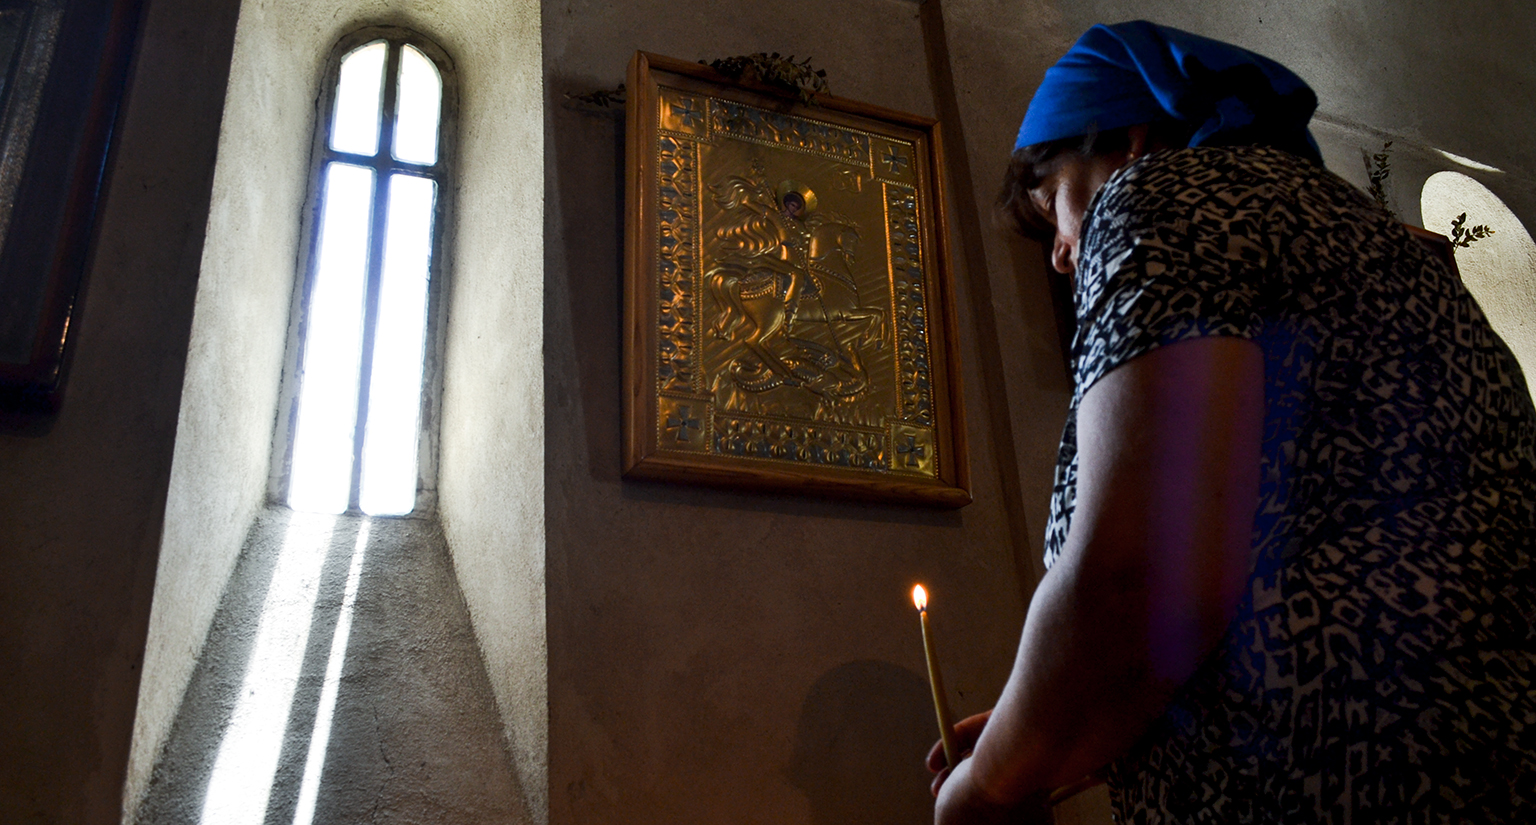 A woman lighting a candle in a church.